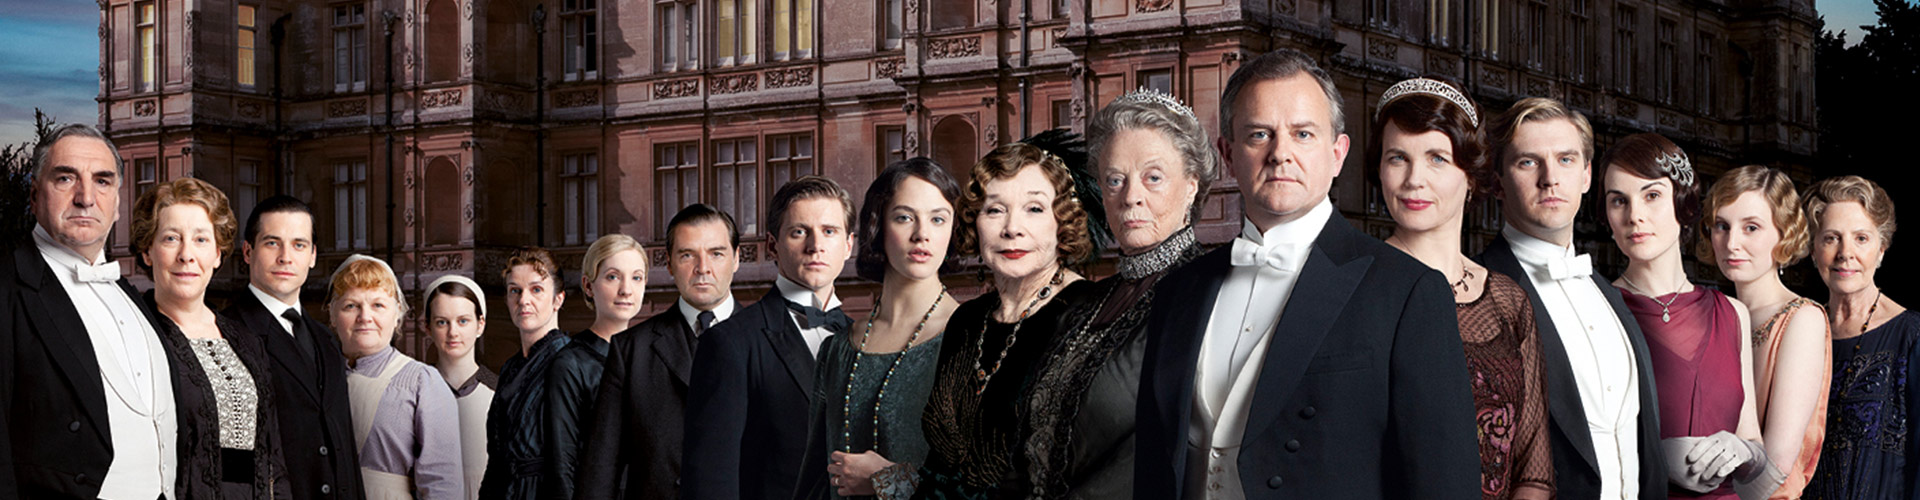 downton-abbey-header.jpg